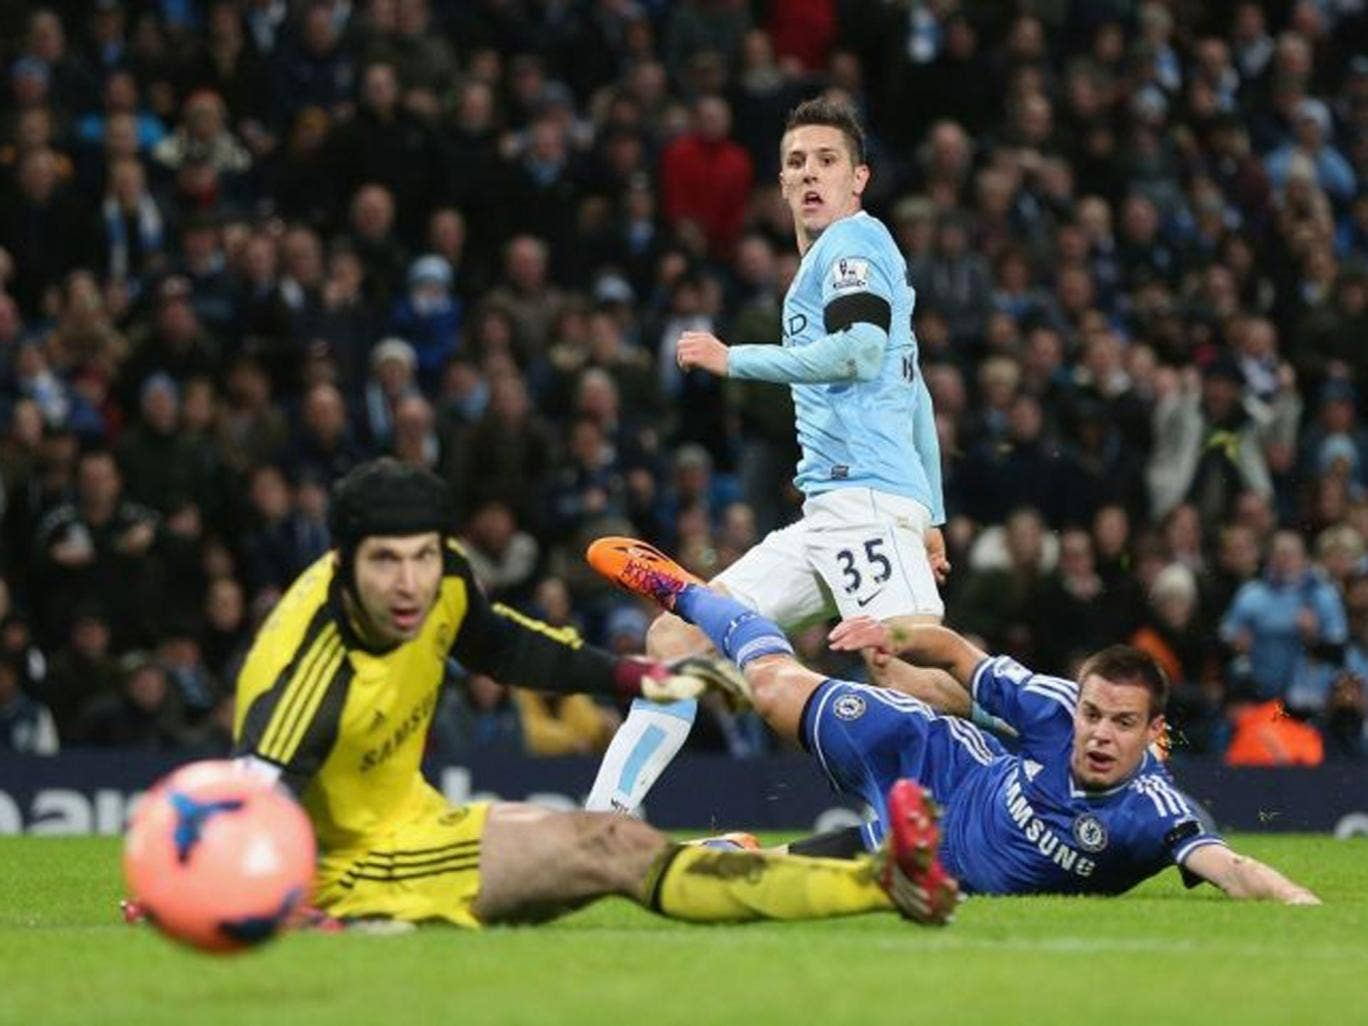 Watchmen: Stevan Jovetic looks on as he scores Manchester City's opening goal past Chelsea's Petr Cech (left) and Nemanja Matic (right) during yesterday's FA Cup tie